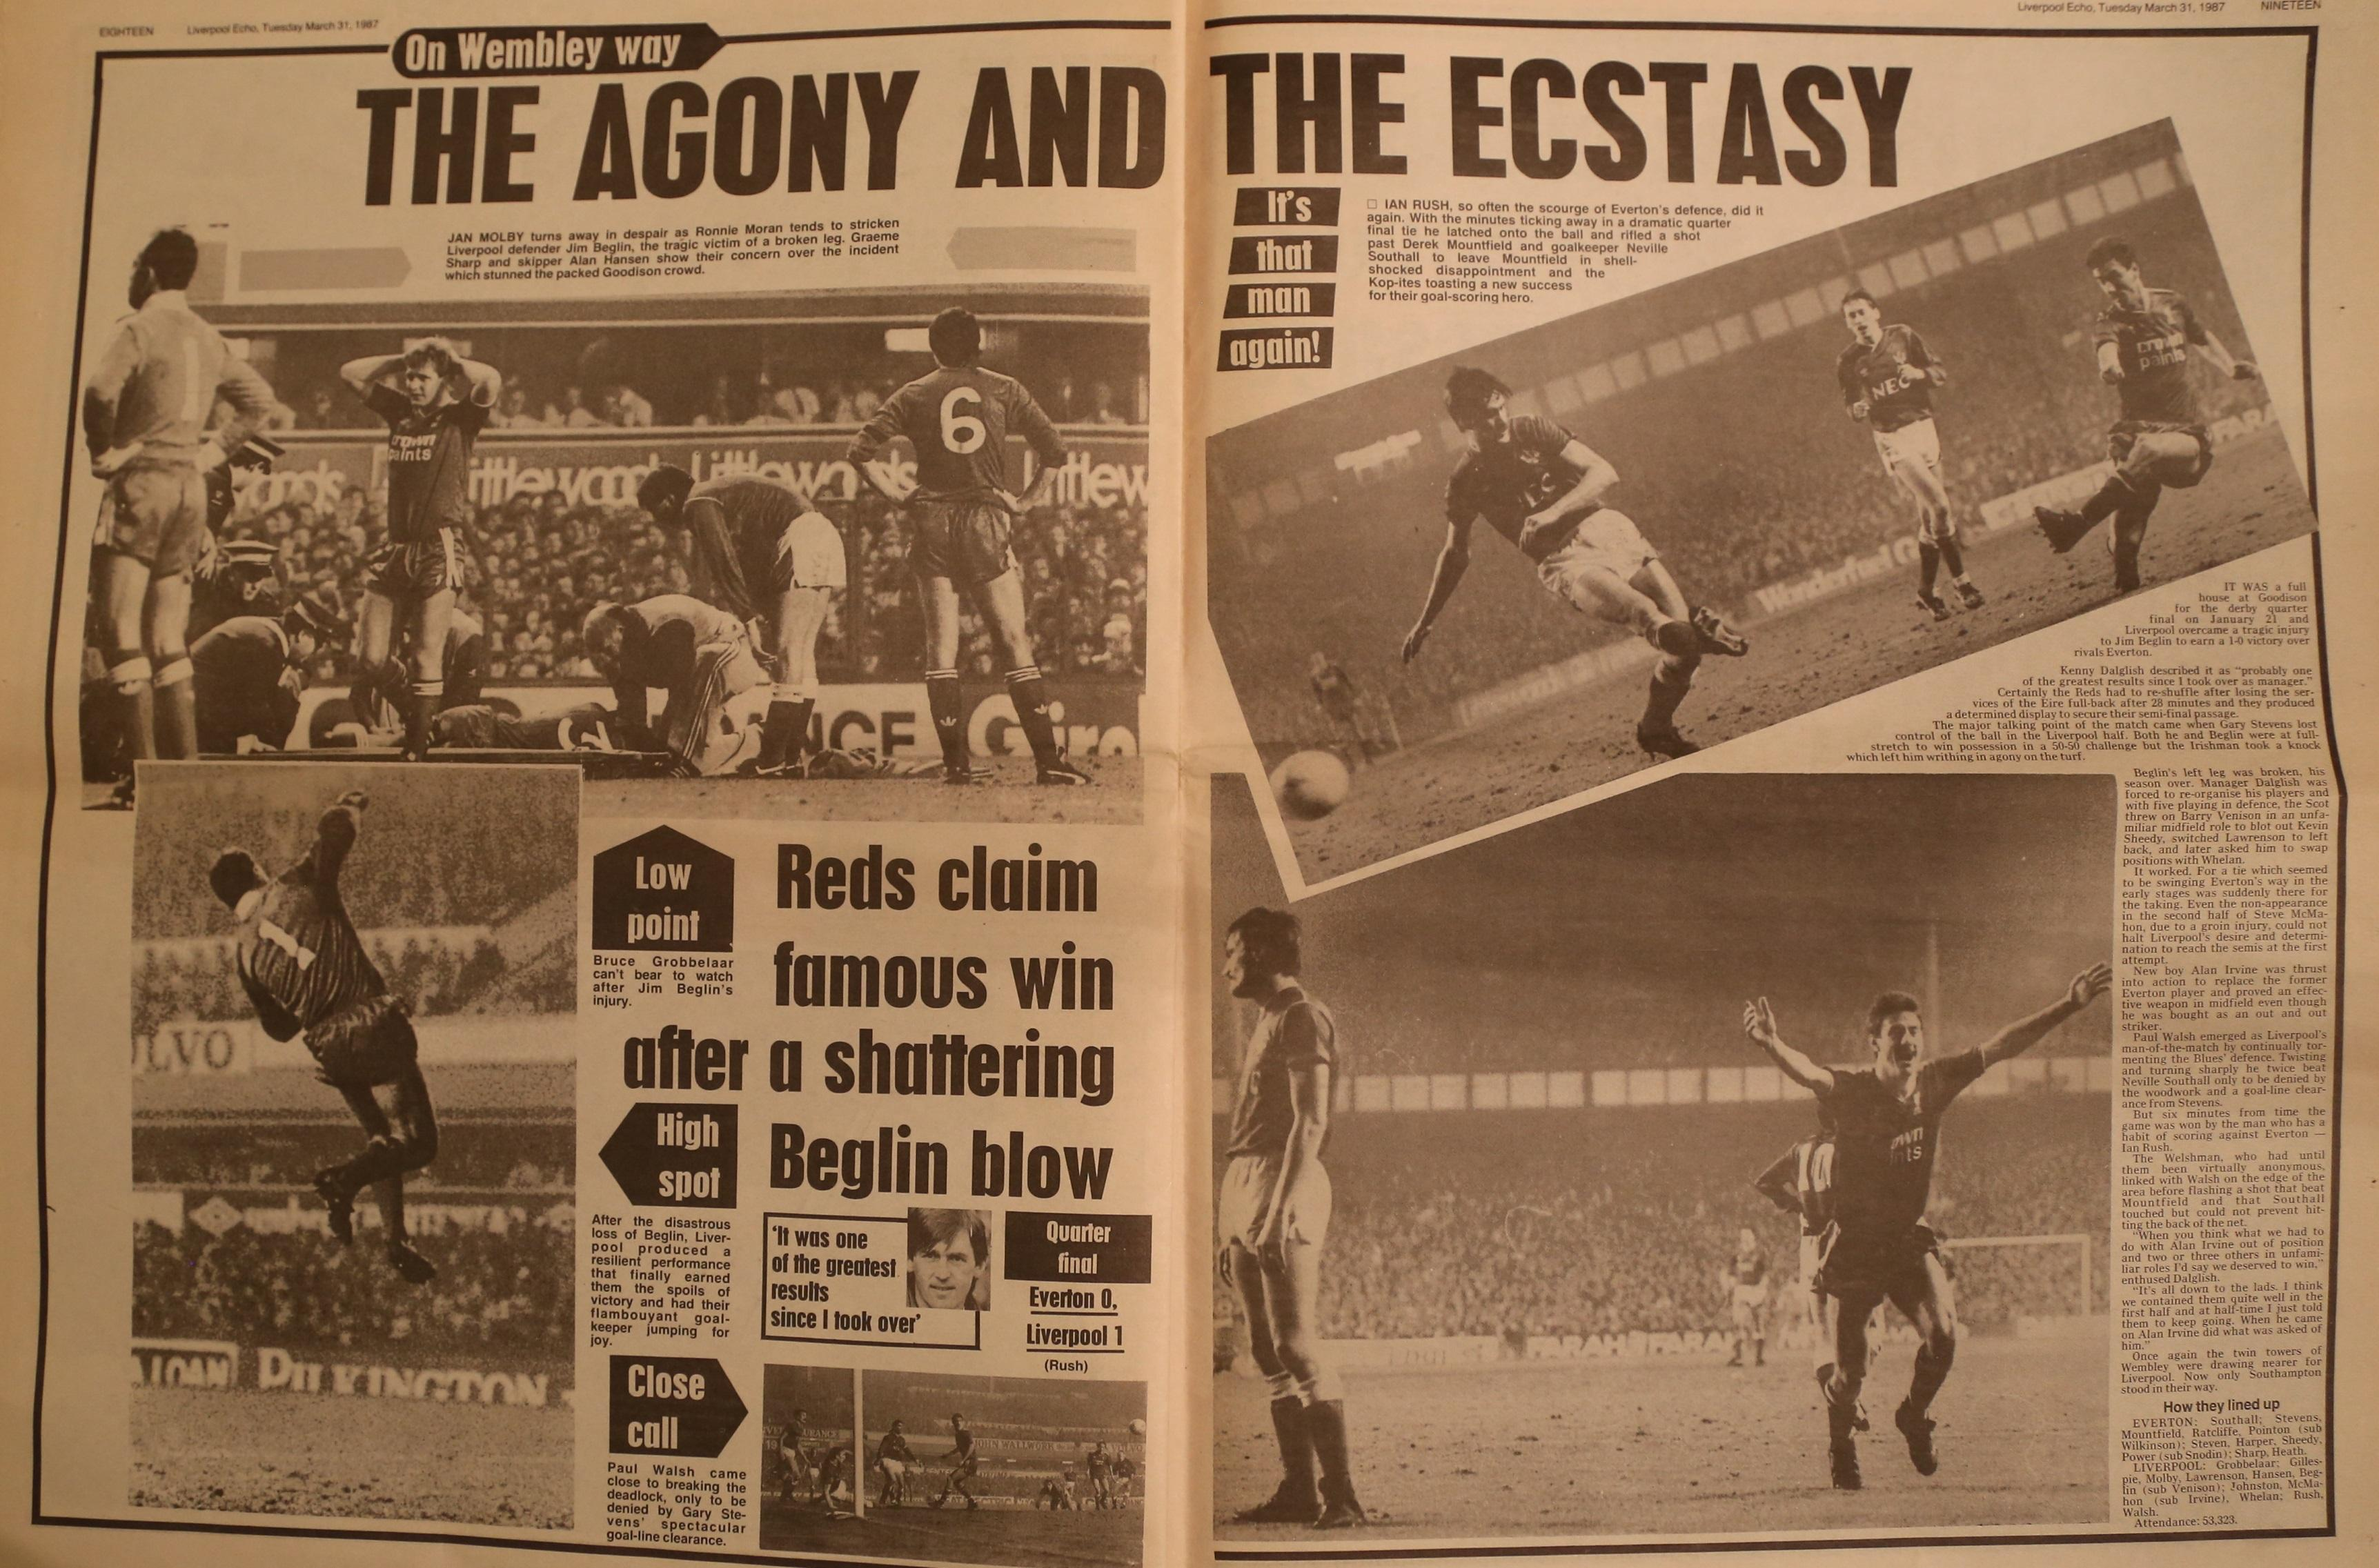 The agony and the ecstasy - 21 January 1987